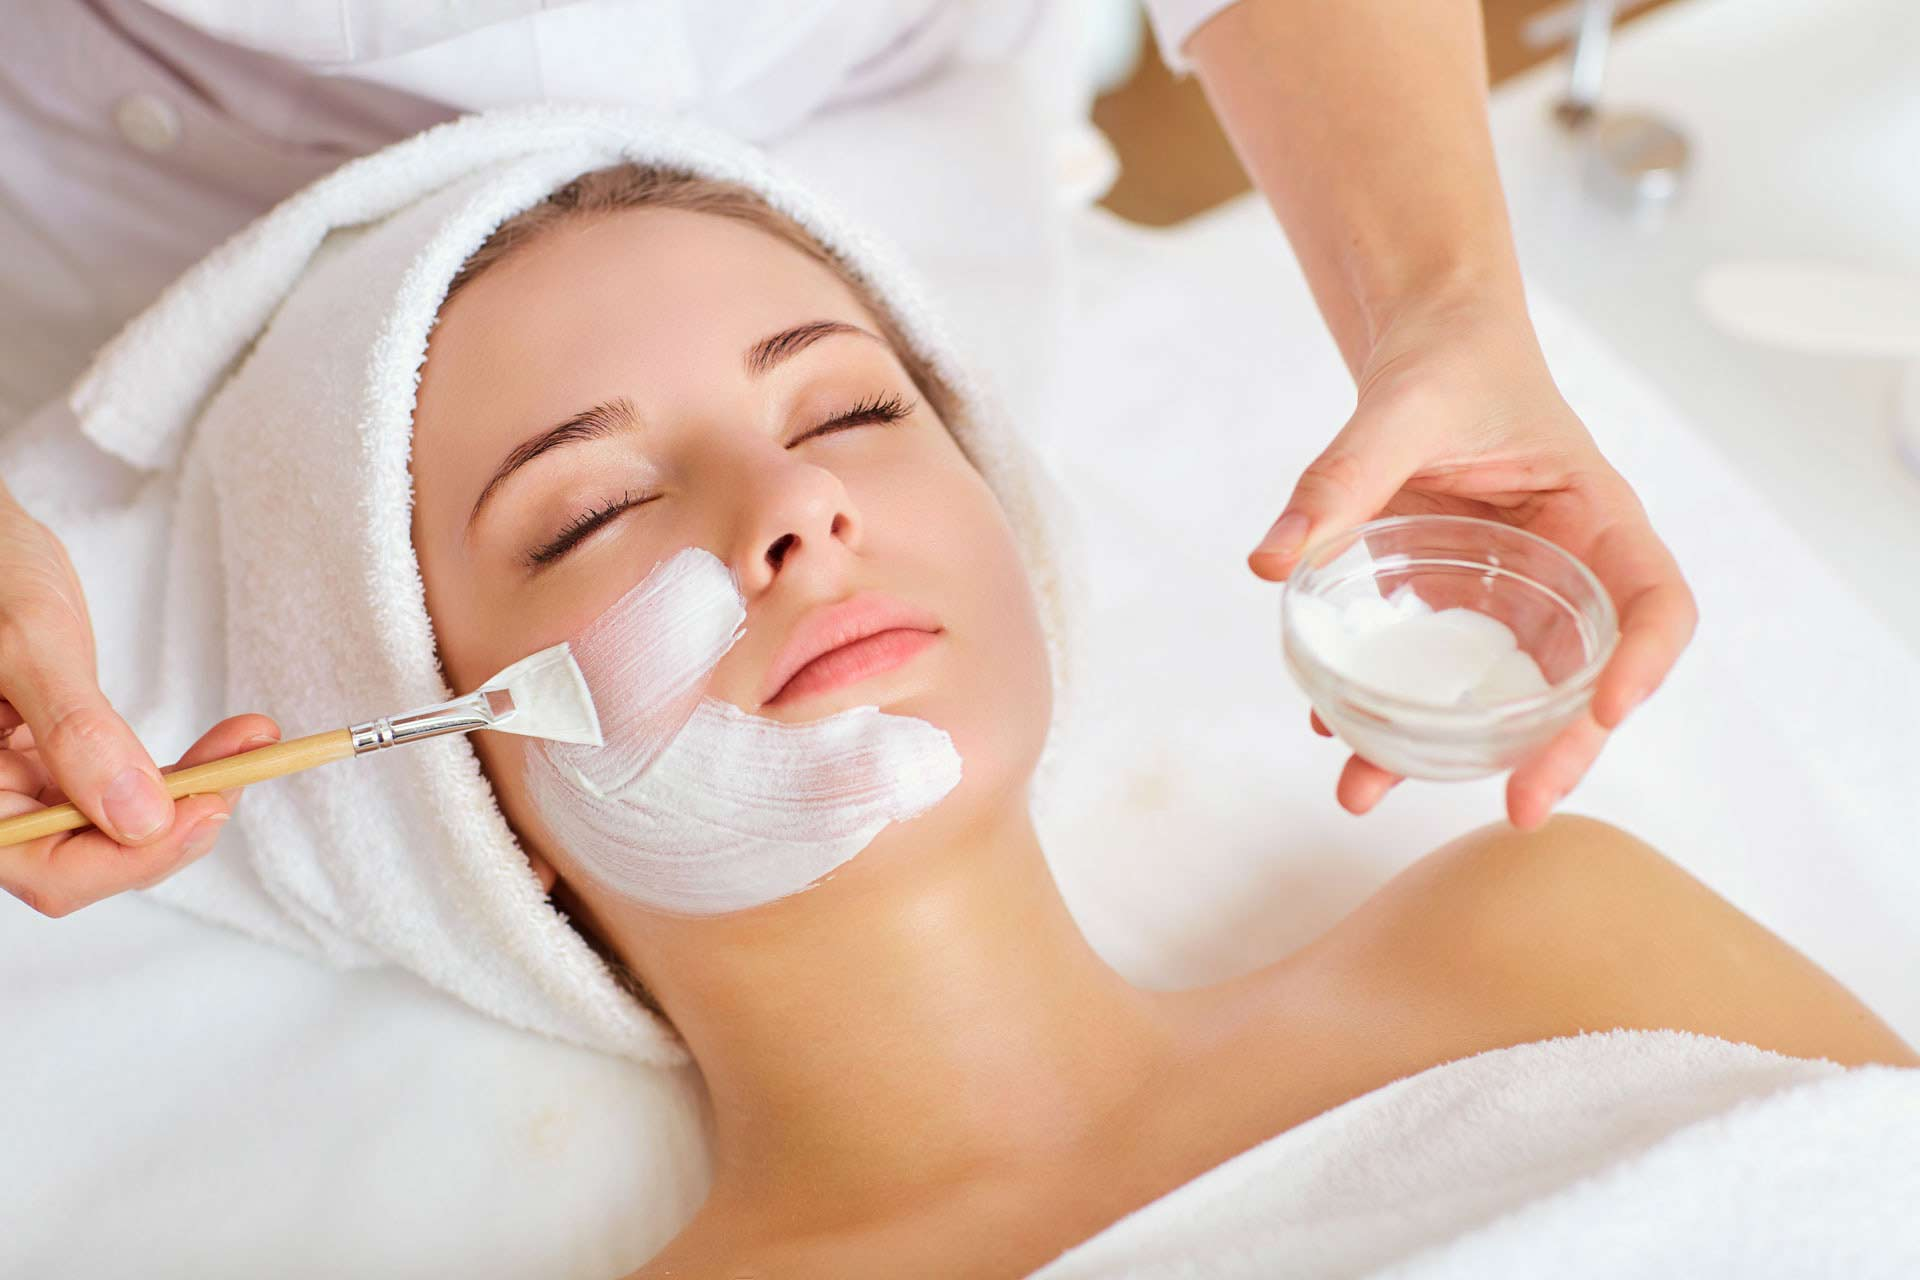 What is your esthetician's facial training or experience?